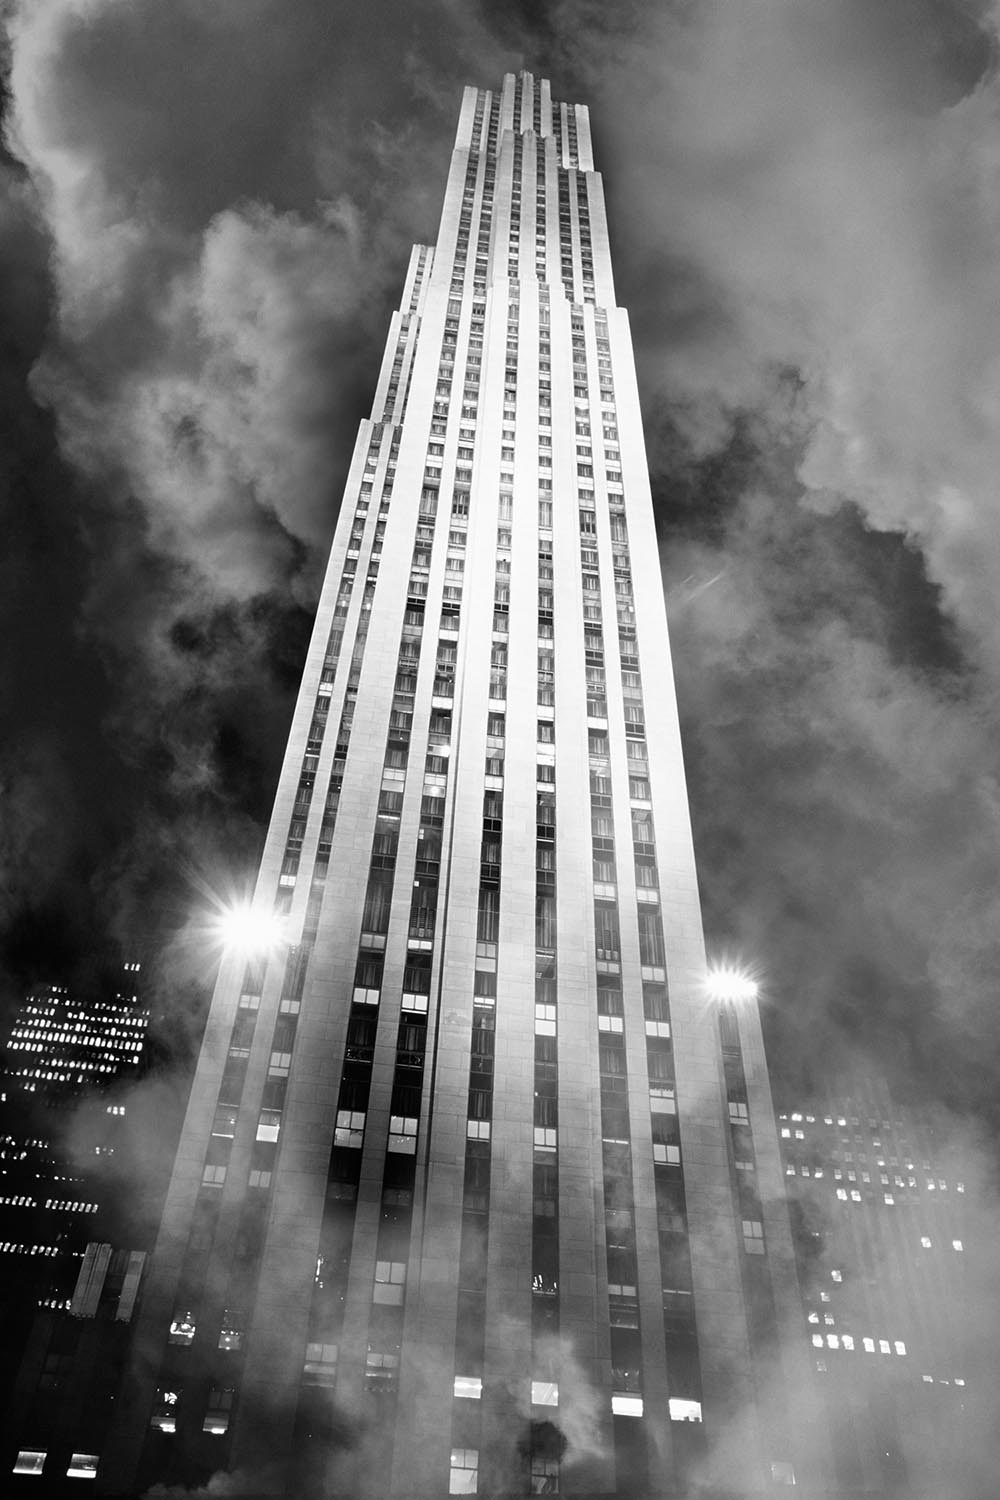 Black and white photograph of Rockefeller Center in fog at night.